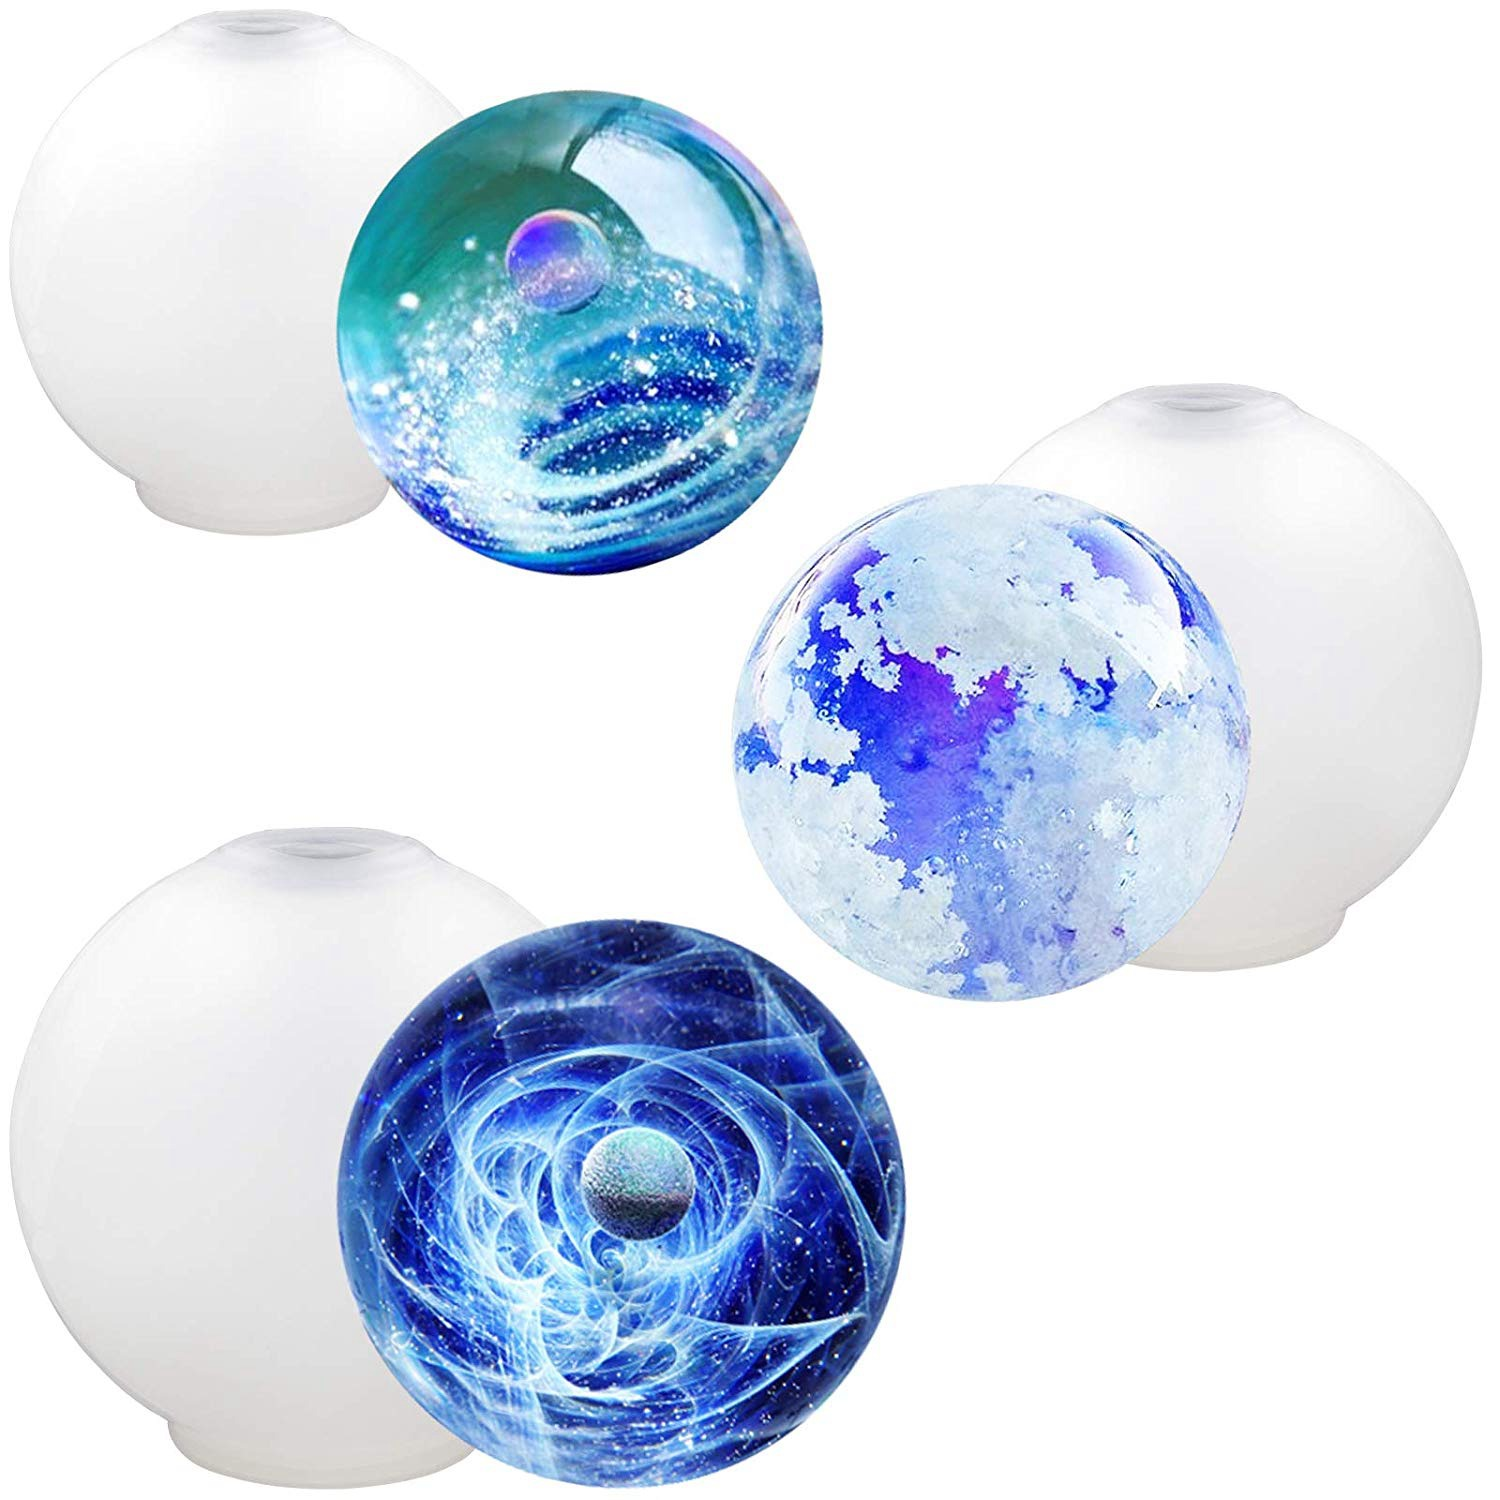 Sphere Chaim Ball Resin Mold Flexible Mouth And No Leaking Assorted Sizes 3-Count